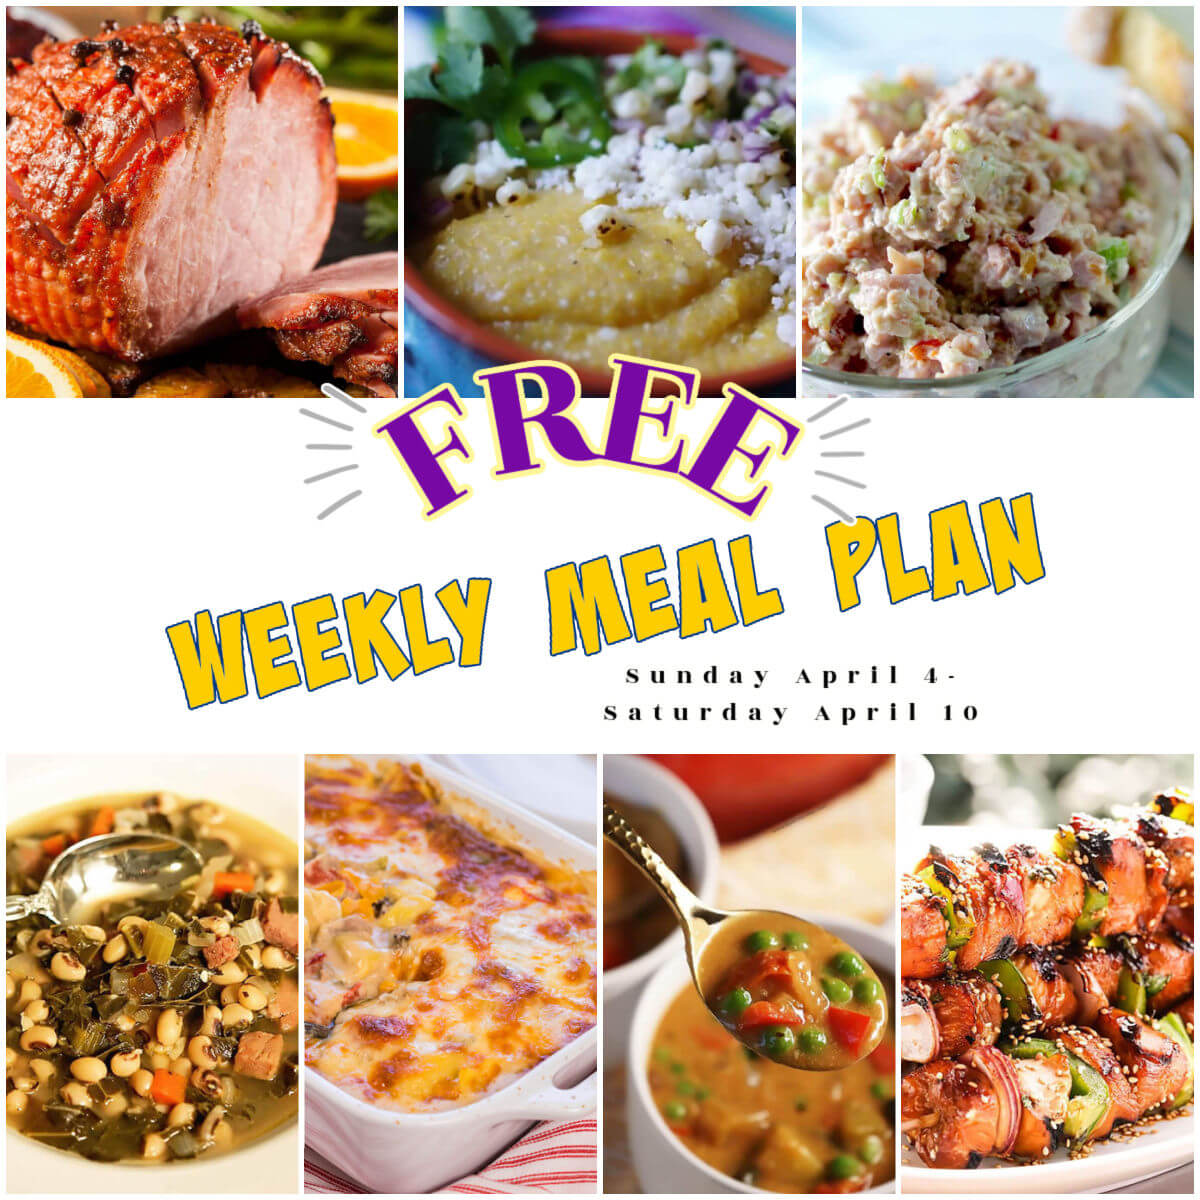 Weekly Meal Plan Collage of recipes for the week of April 4-10. With print overlay.